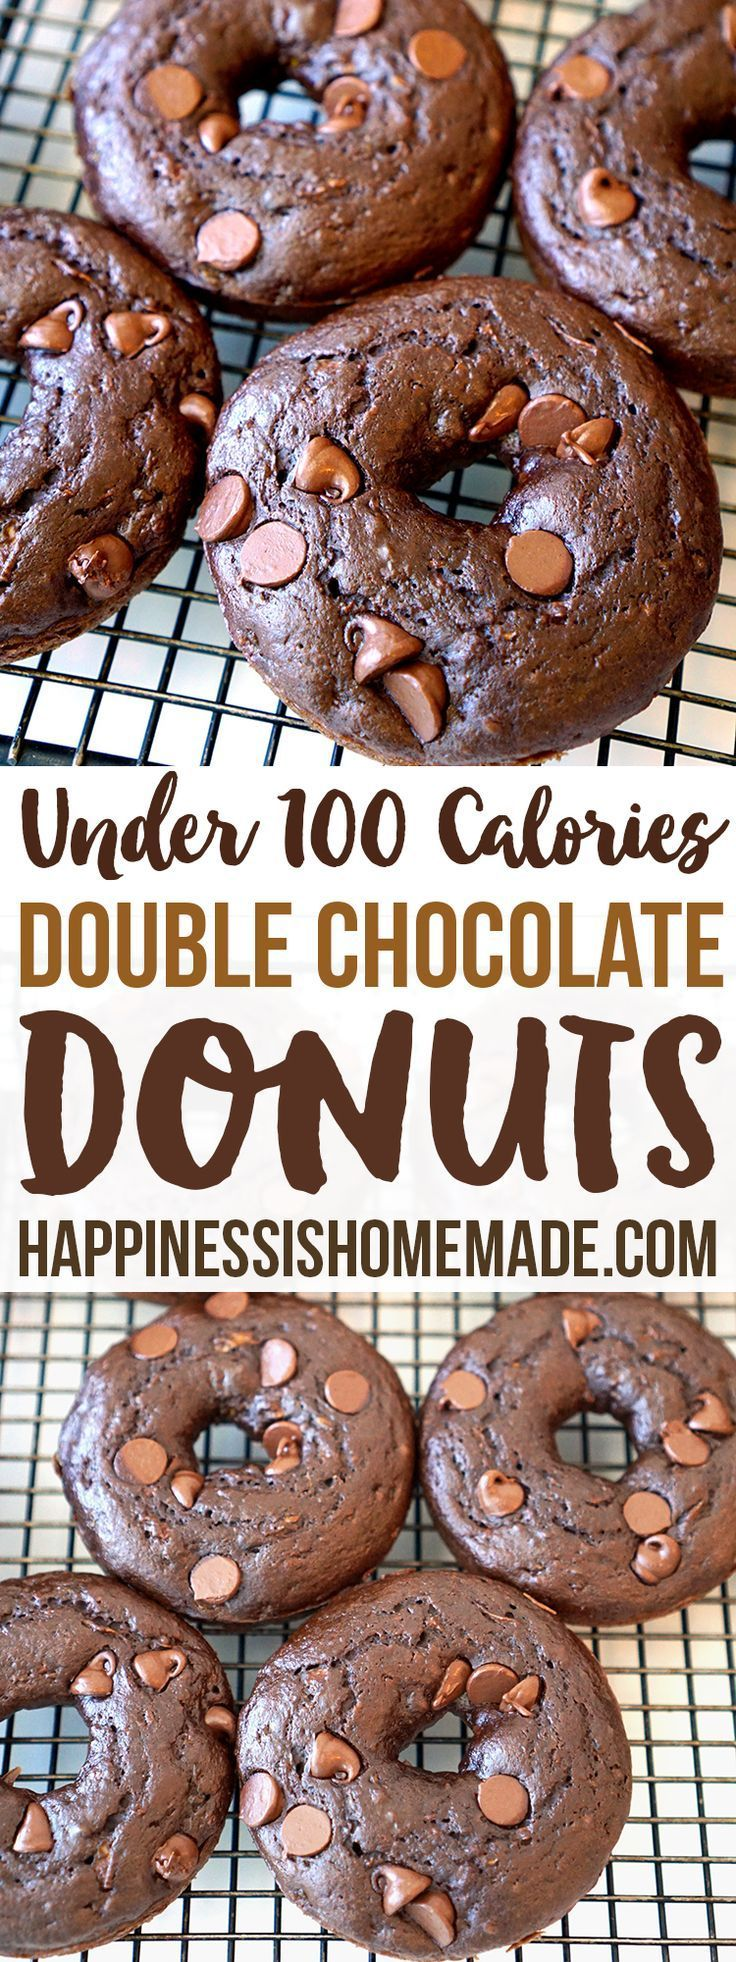 These better-for-you double chocolate donuts are under 100 calories each! A moist and rich chocolaty indulgence that won't blow your diet! (Hint: they're packed full of healthy ingredients like zucchini!)